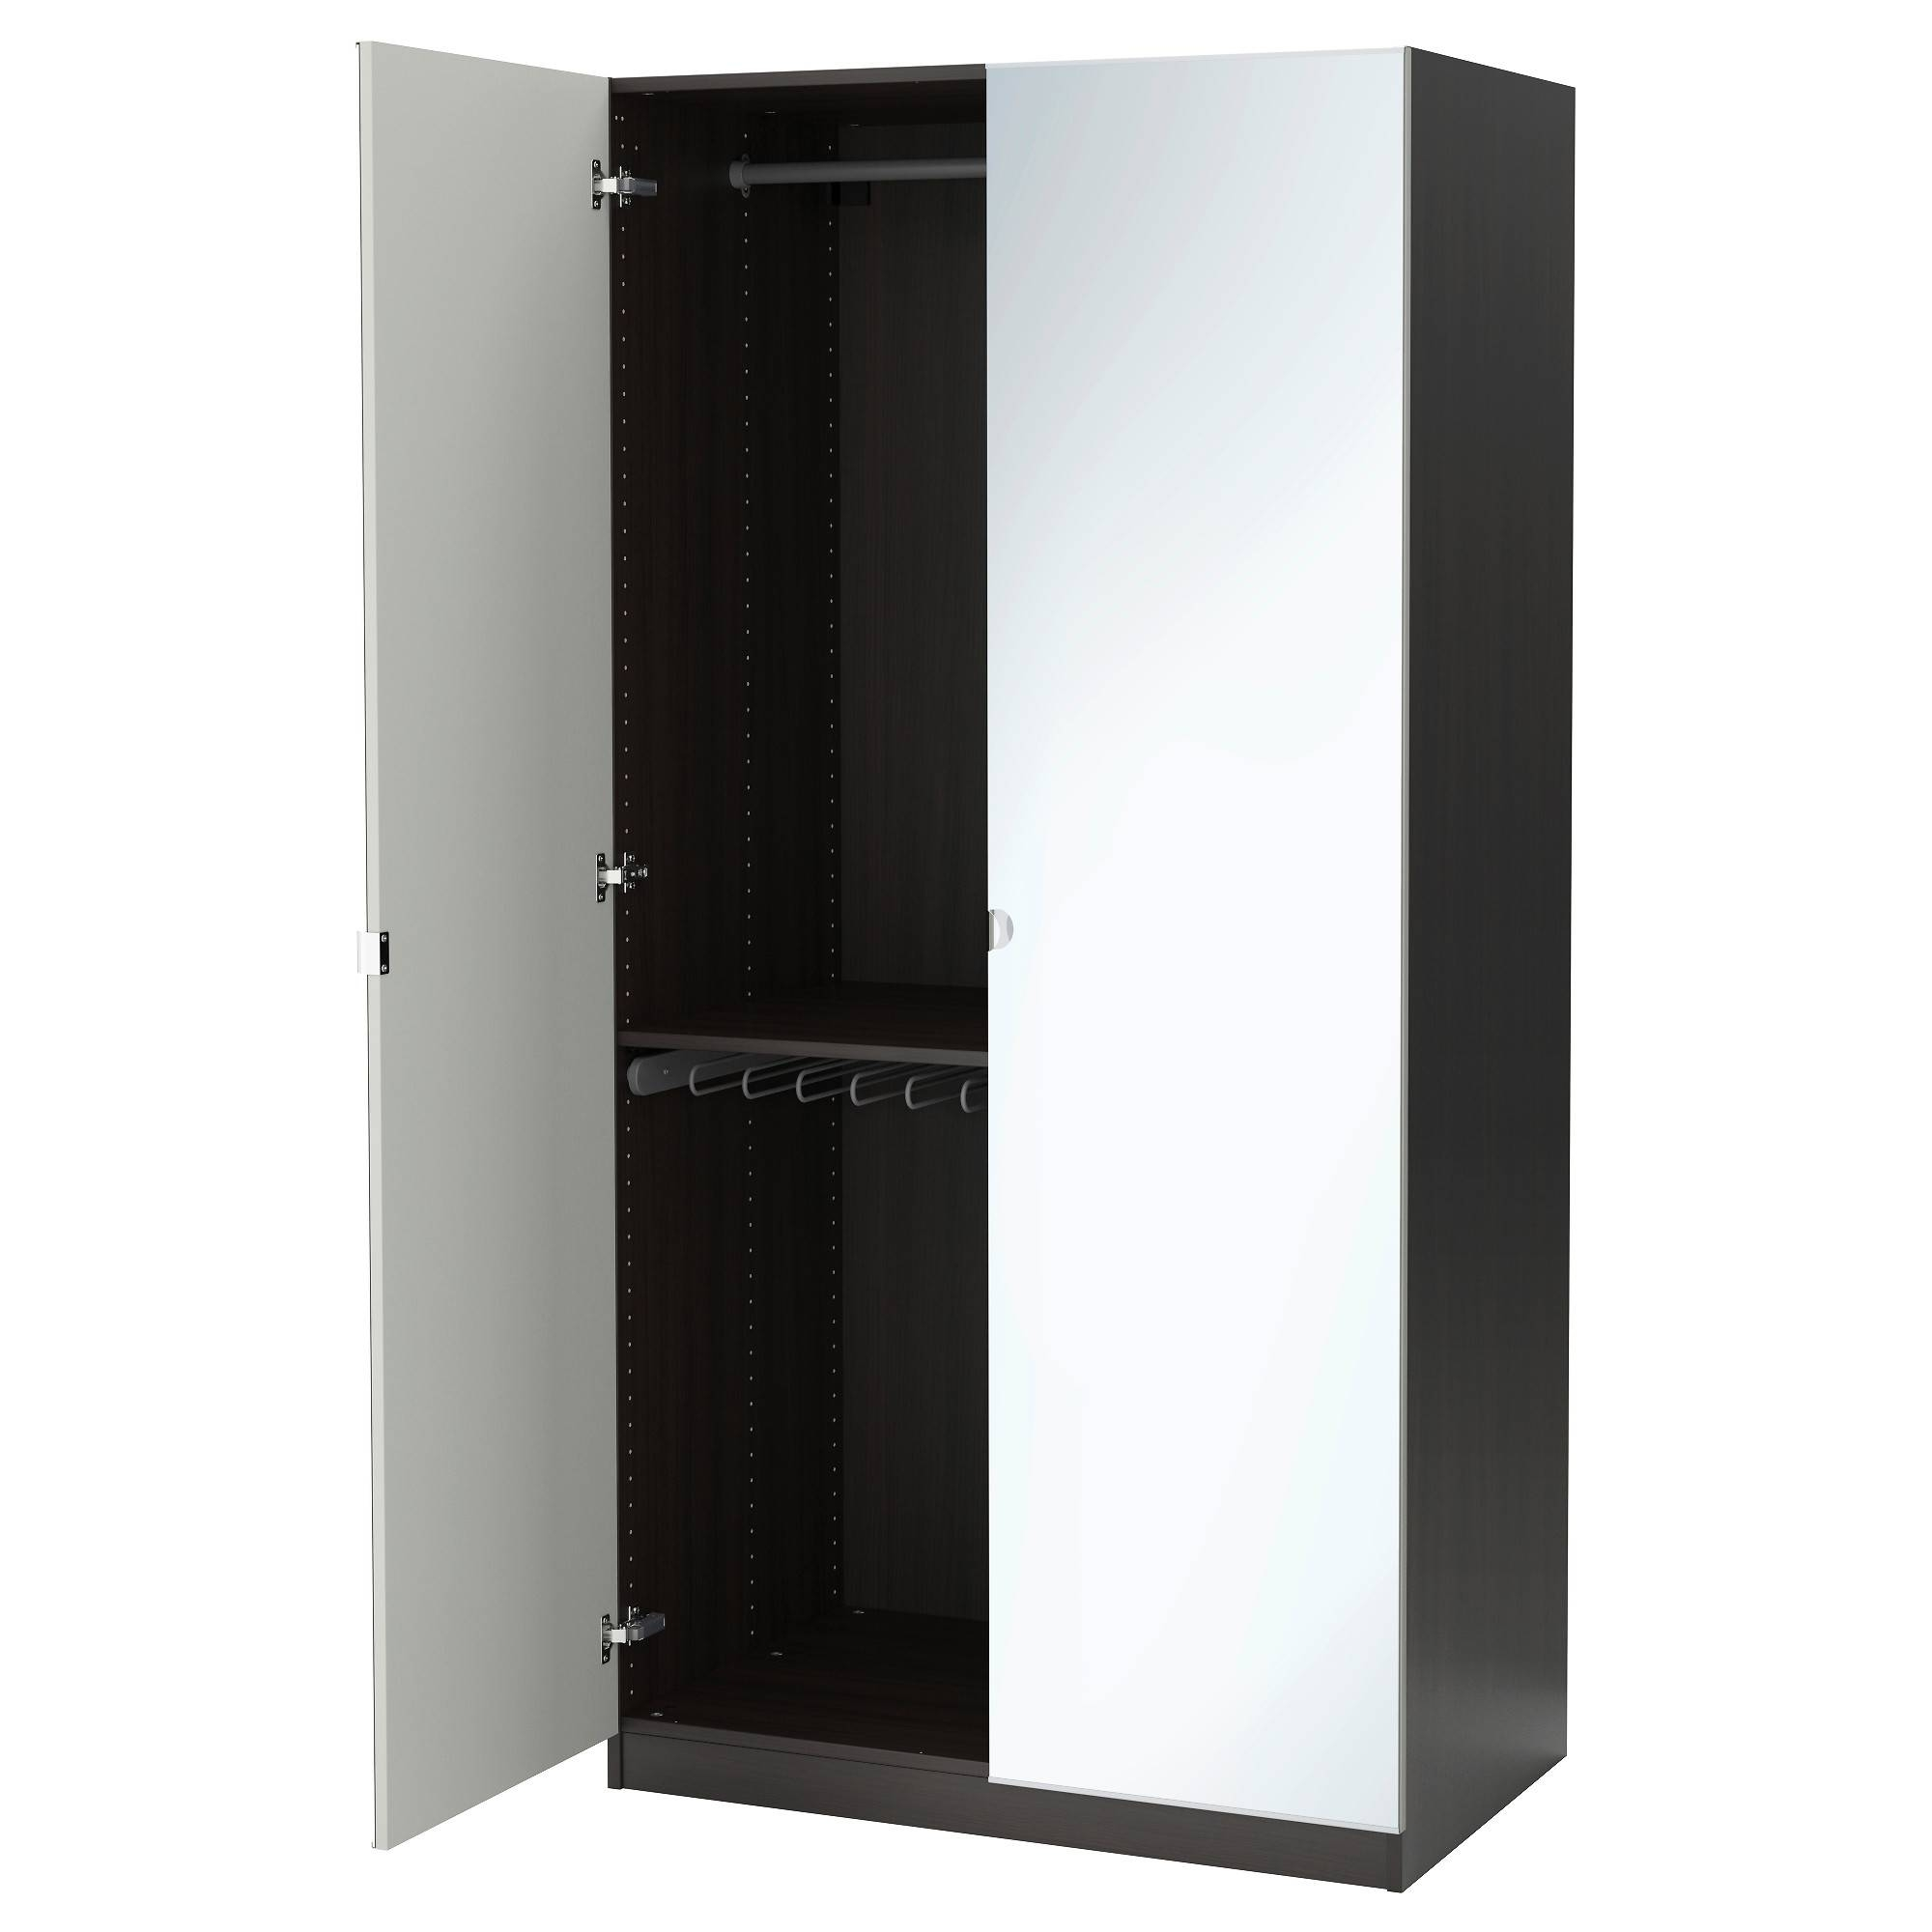 Wardrobes - Pax System - Ikea with regard to Single Door Mirrored Wardrobes (Image 14 of 15)